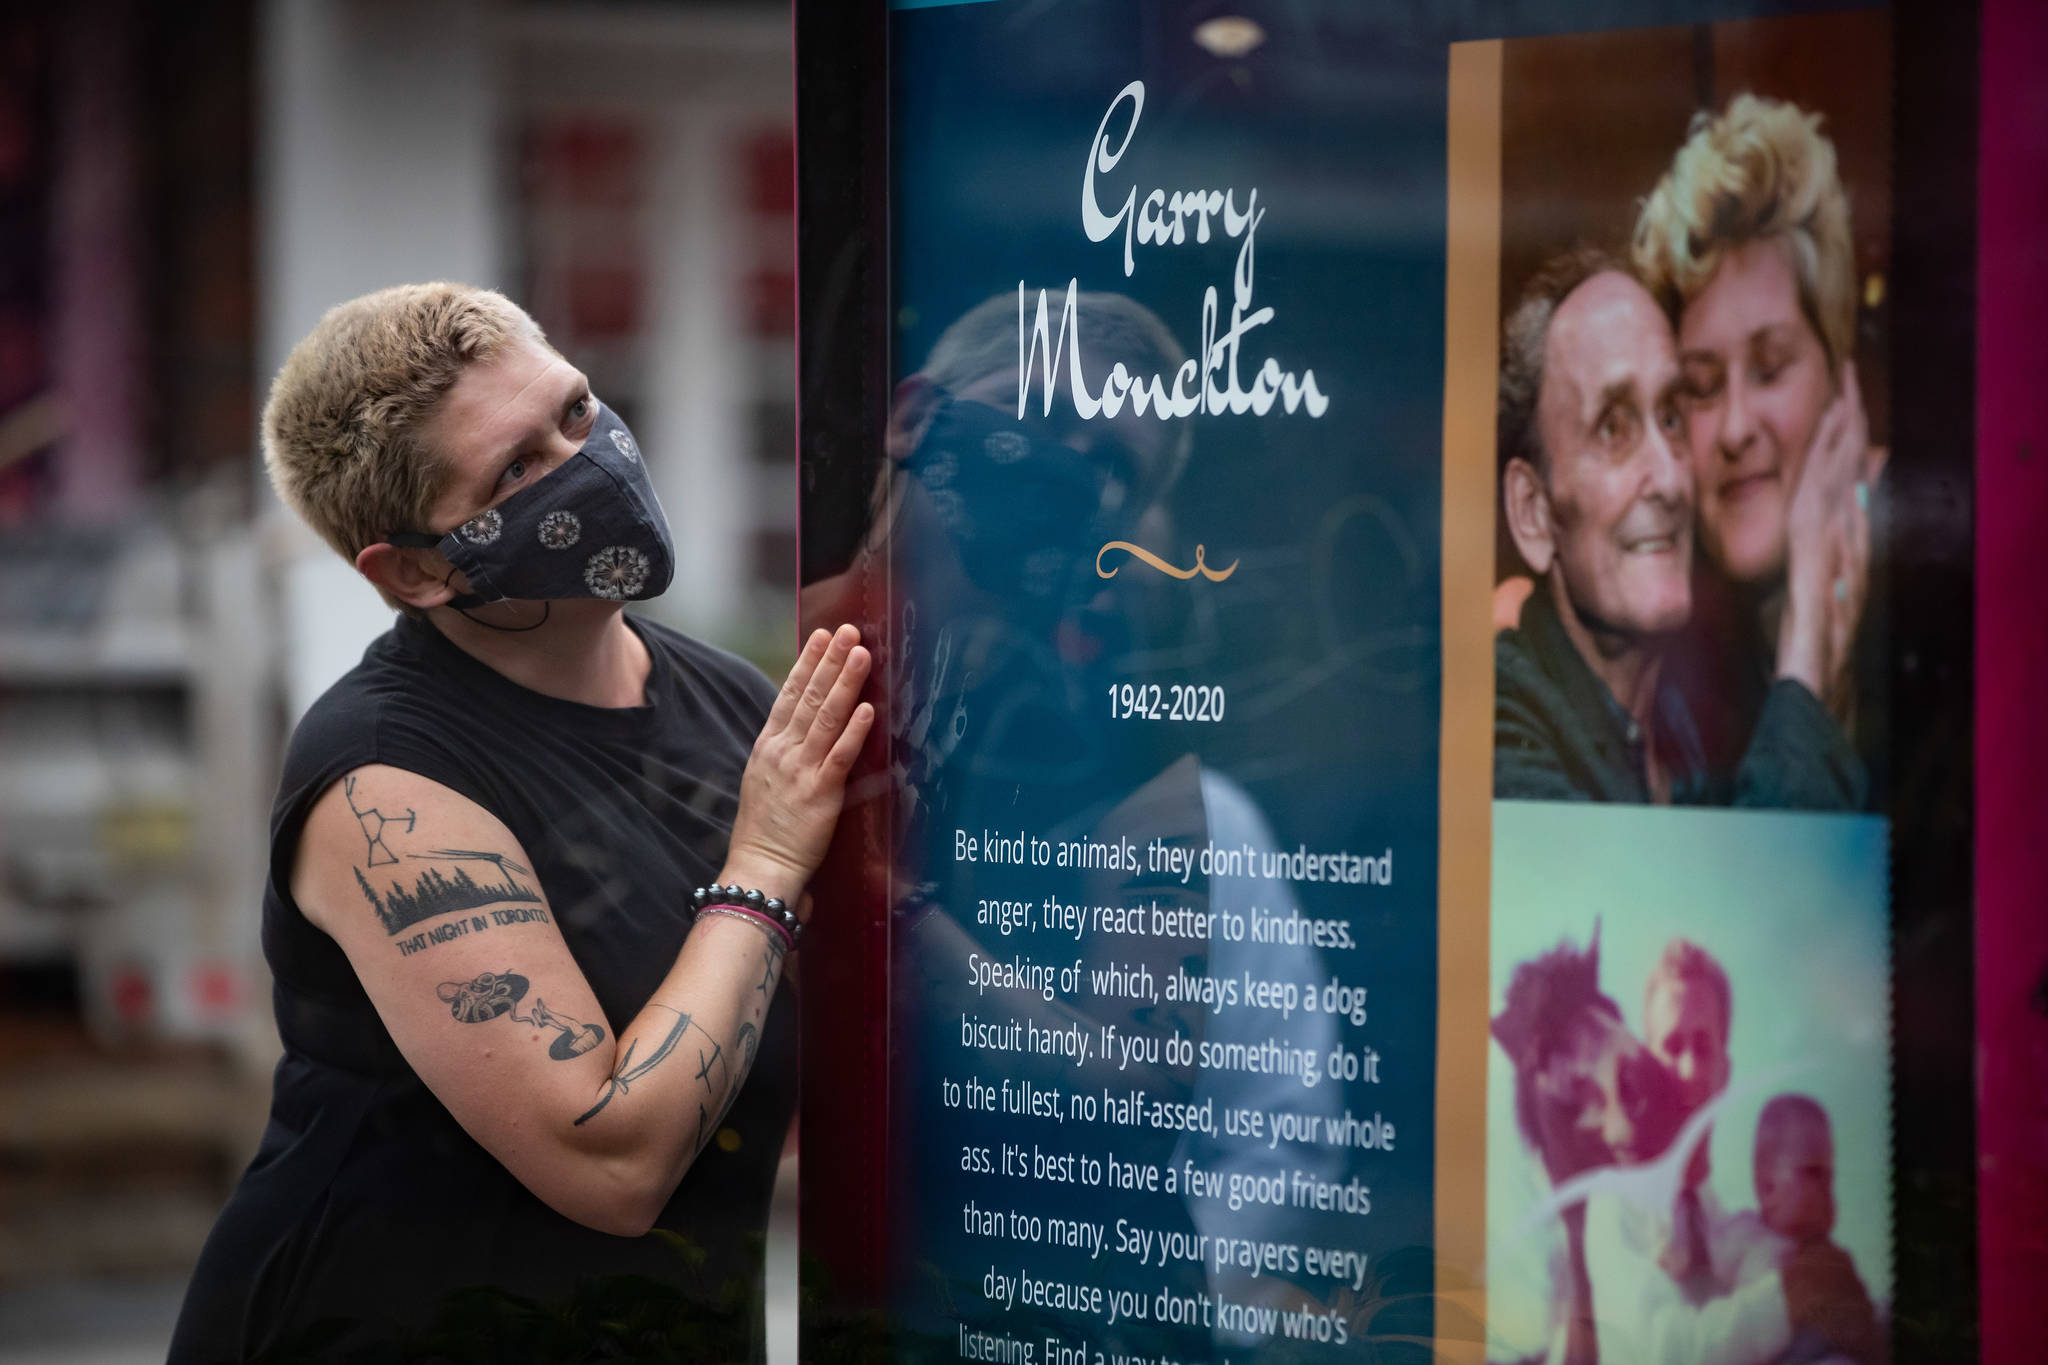 Samantha Monckton pauses after unveiling a memorial for her late 77-year-old father Garry Monckton, who died in April after becoming infected with COVID-19, in Vancouver, B.C., Tuesday, Sept. 15, 2020. The tribute to Monckton is the first of a series of memorial posters paying tribute to residents of Vancouver's West End who have died from COVID-19. THE CANADIAN PRESS/Darryl Dyck